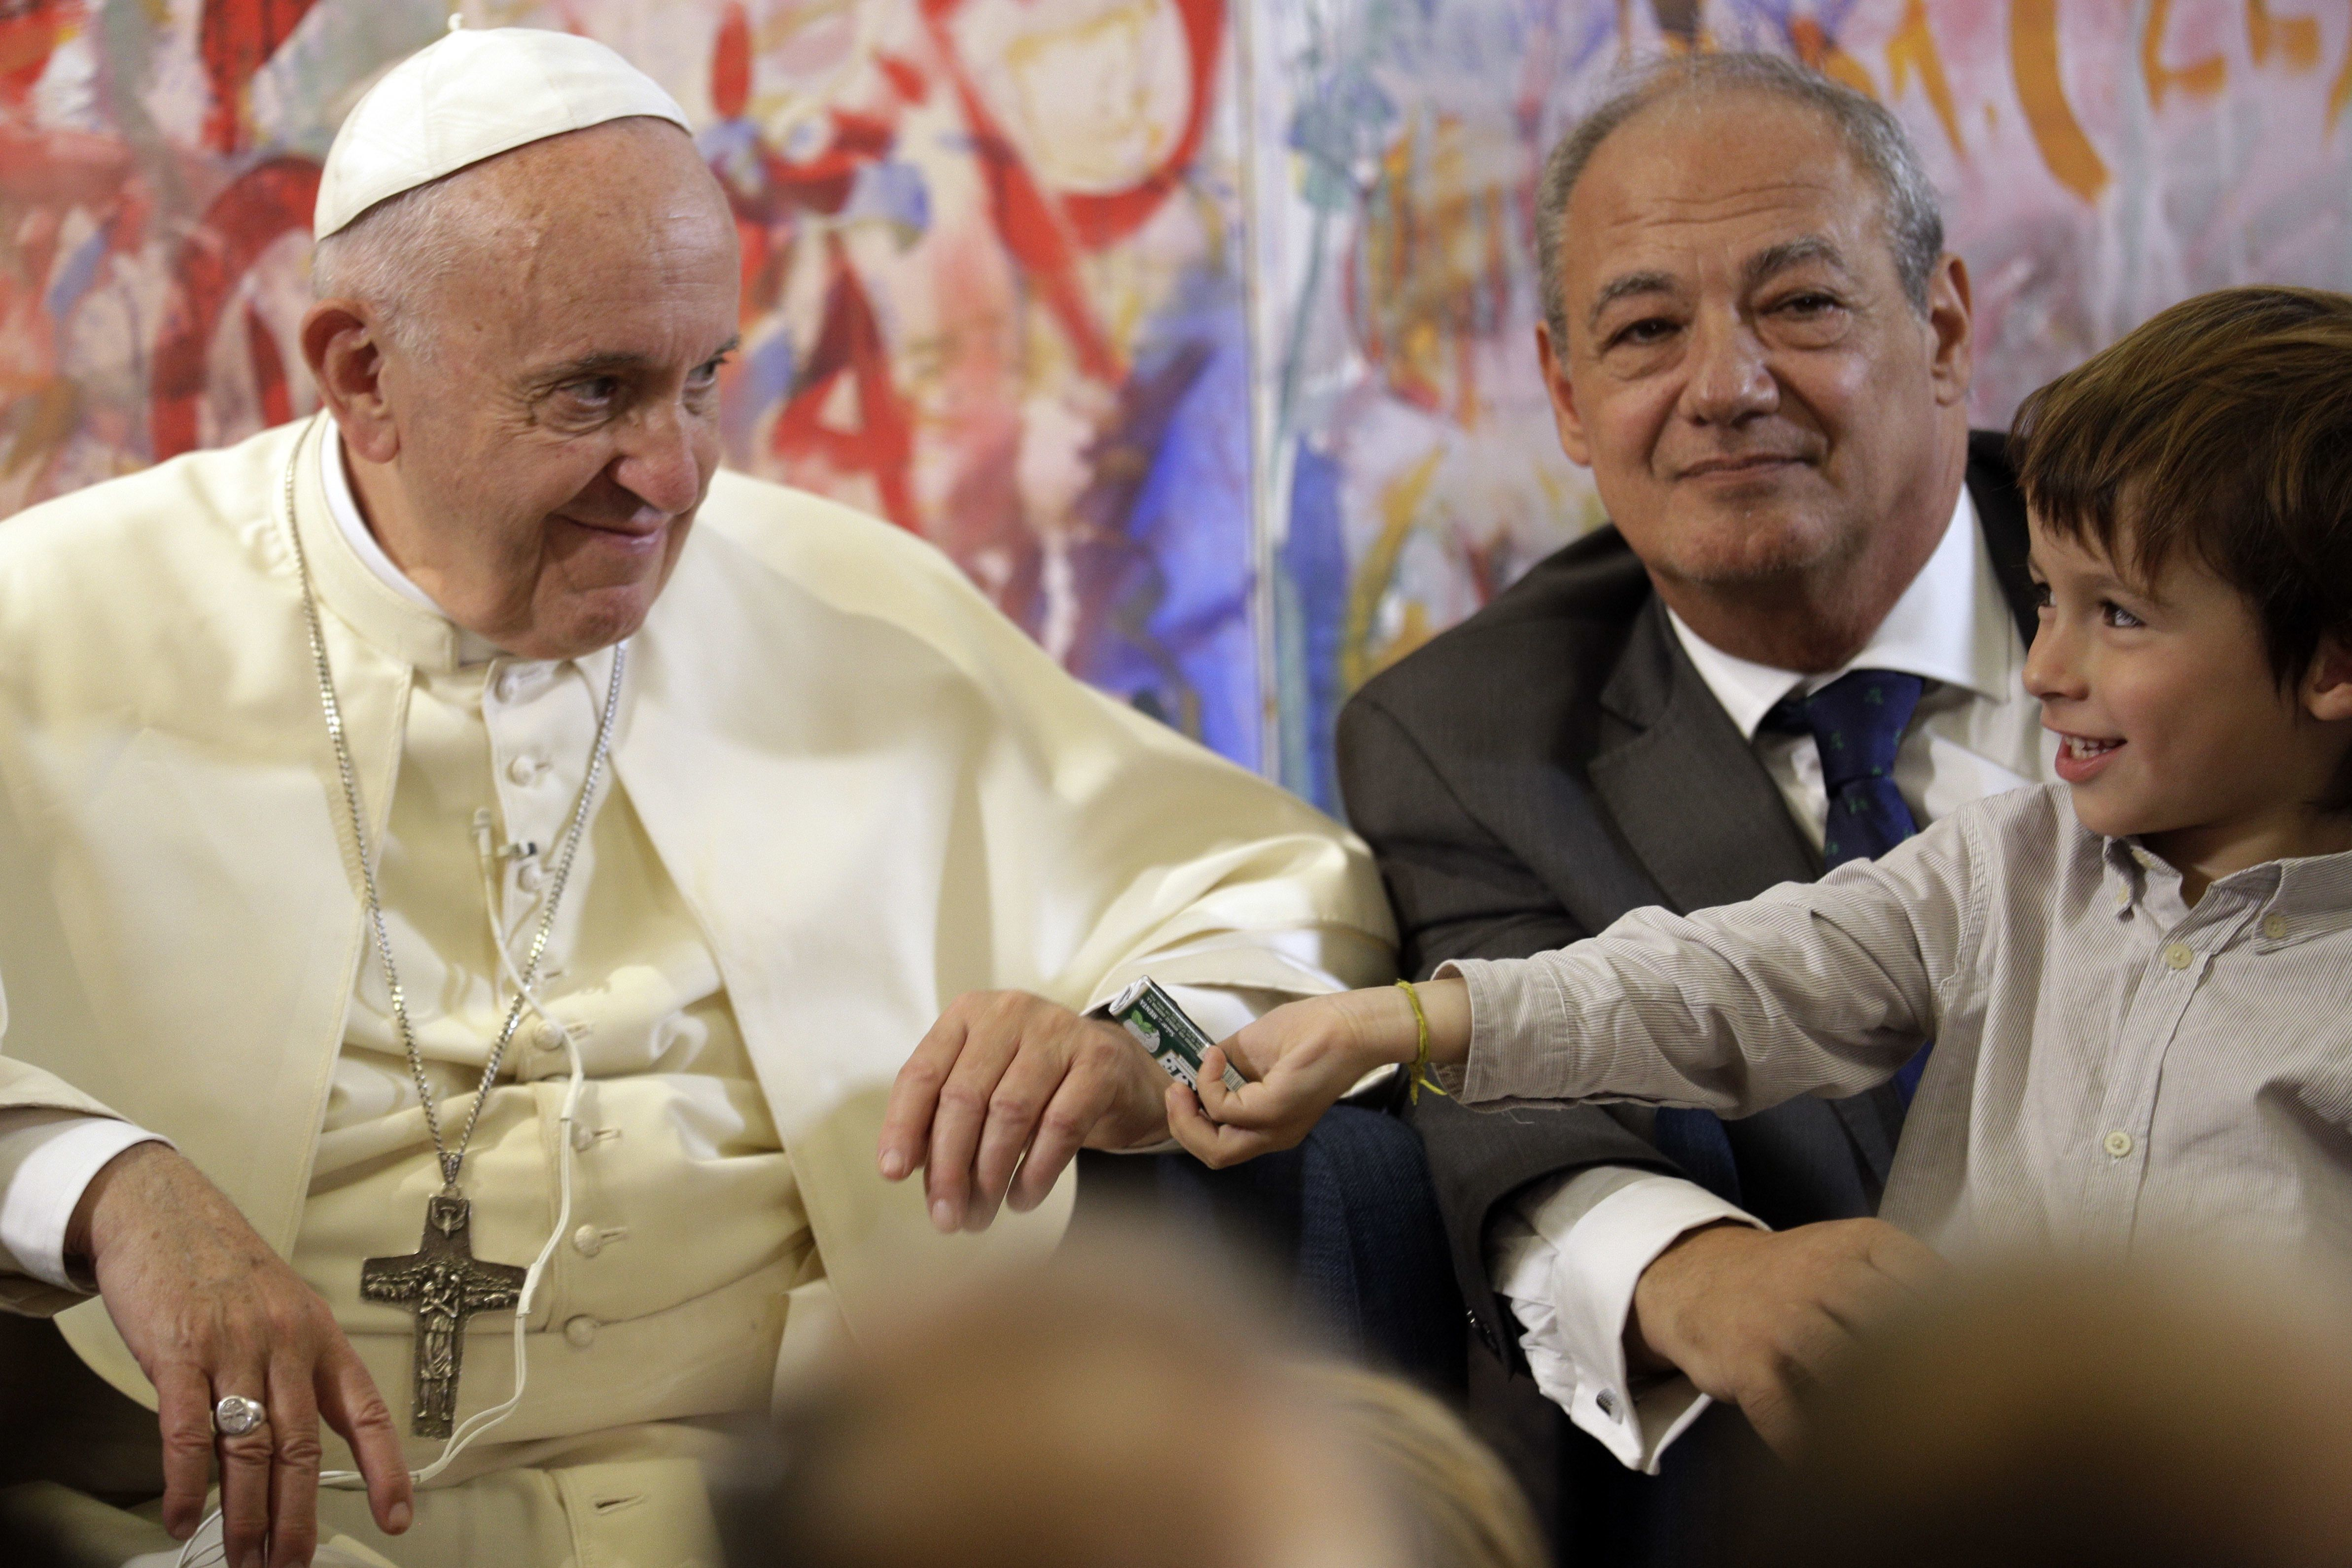 Pope Francis (L) looks at a child as he attends a meeting with members of the Scholas Occurrentes initiative, in Palazzo San Calisto in Rome on October 26, 2017. / AFP PHOTO / POOL / ANDREW MEDICHINI        (Photo credit should read ANDREW MEDICHINI/AFP/Getty Images)